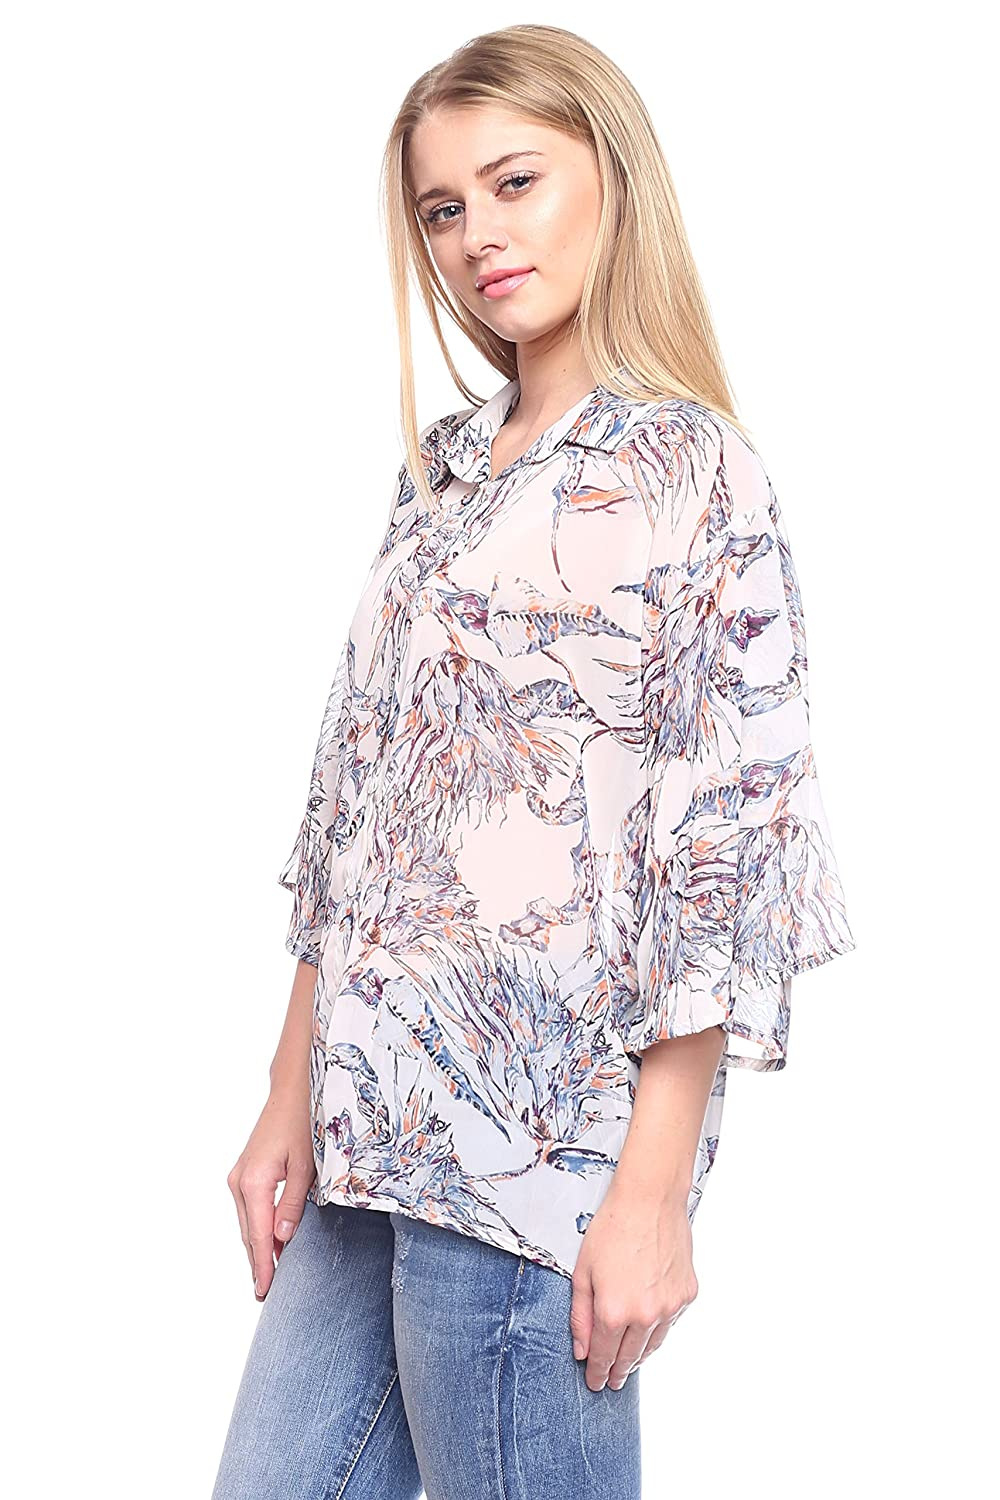 Rokoko Womens 3//4 Sleeve Button Down Printed Shirt Blouse